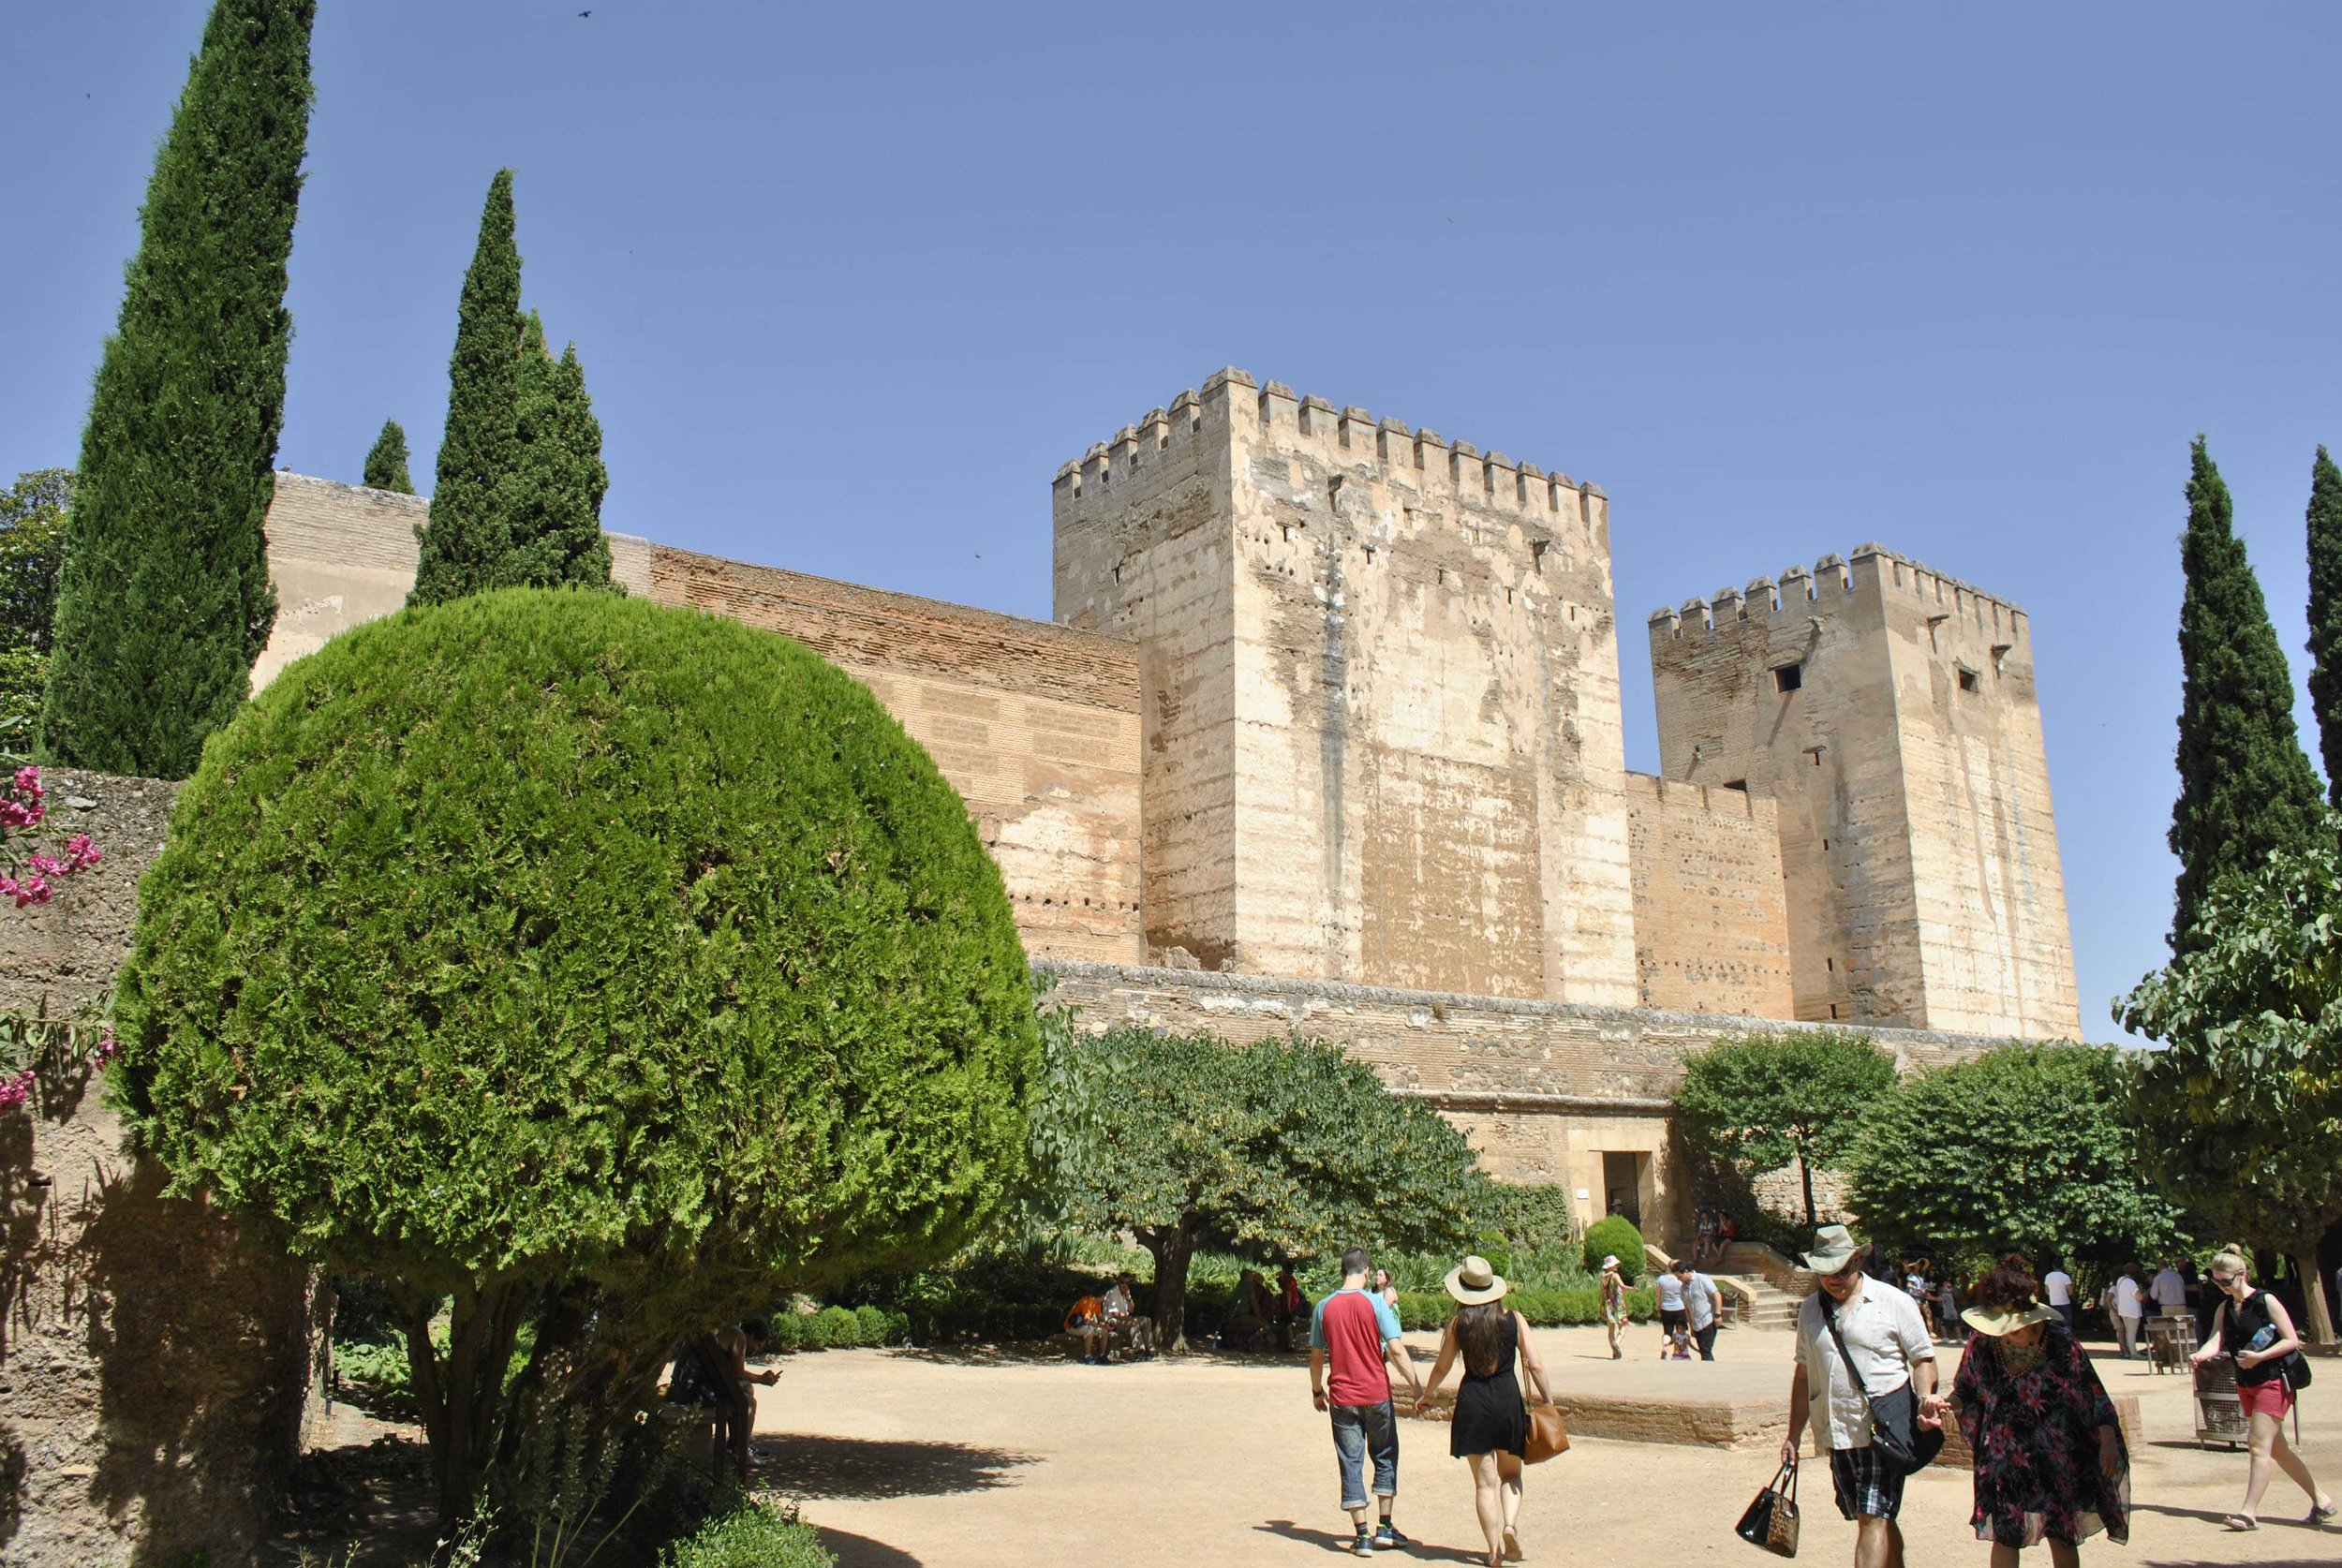 ©Detail Movement - Alhambra Alcazaba Fortress ( NO 14 ON THE MAP)